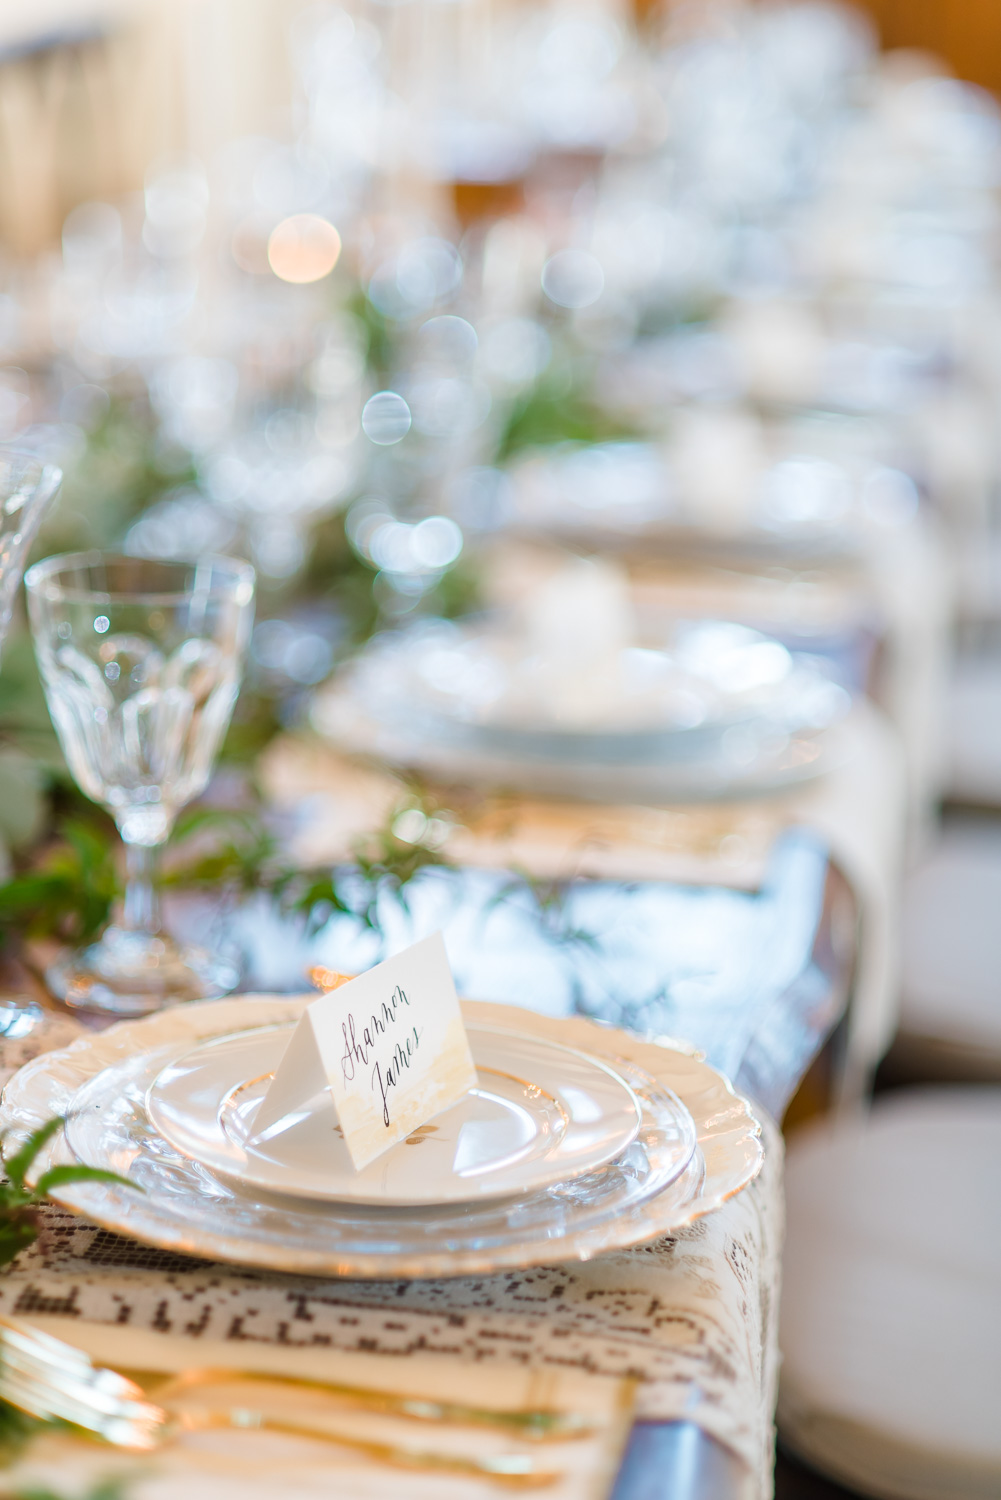 NELYA photographer _WHITE AND GOLDCHINA AND VINTAGE GLASSWARE TABLE SETTINGS AT HIWASSEE RIVER WEDDINGS